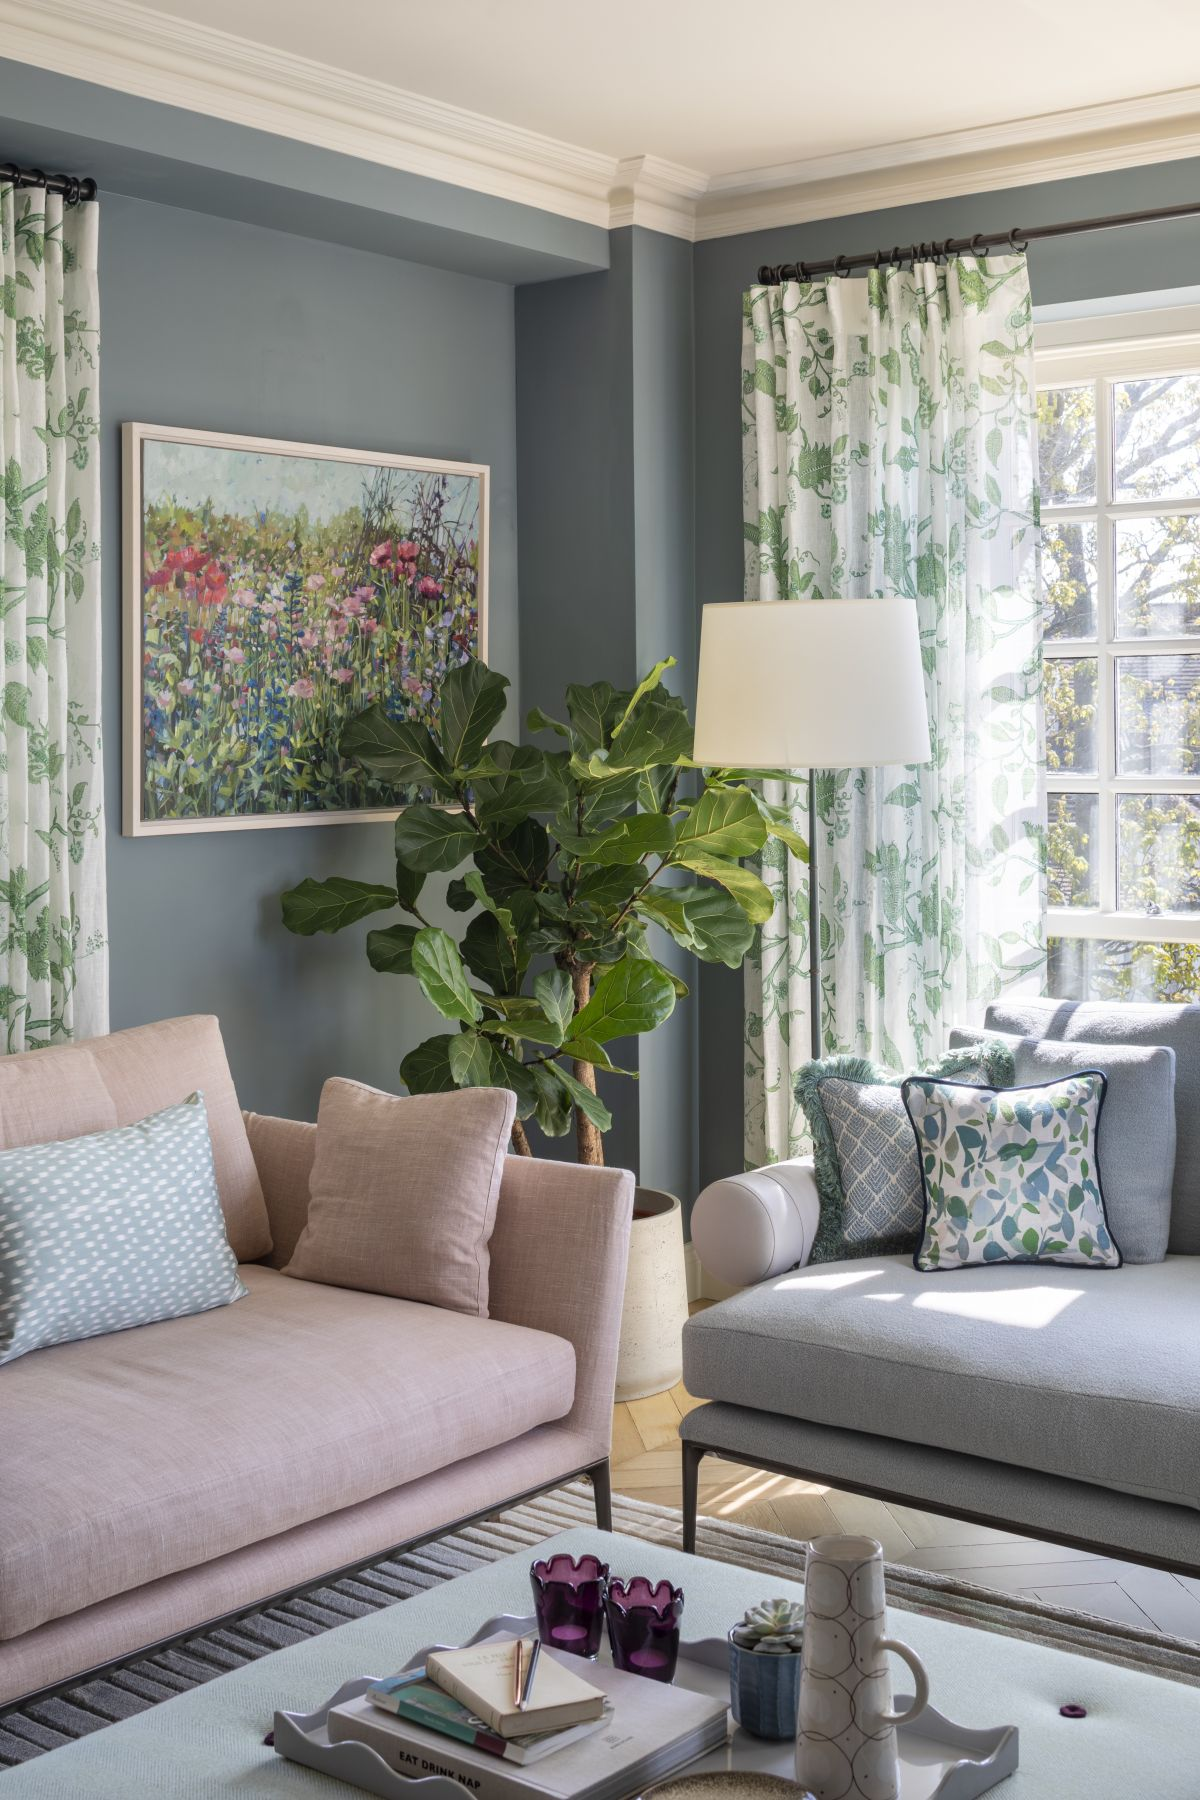 5 color and storage lessons this stunning London apartment will teach you